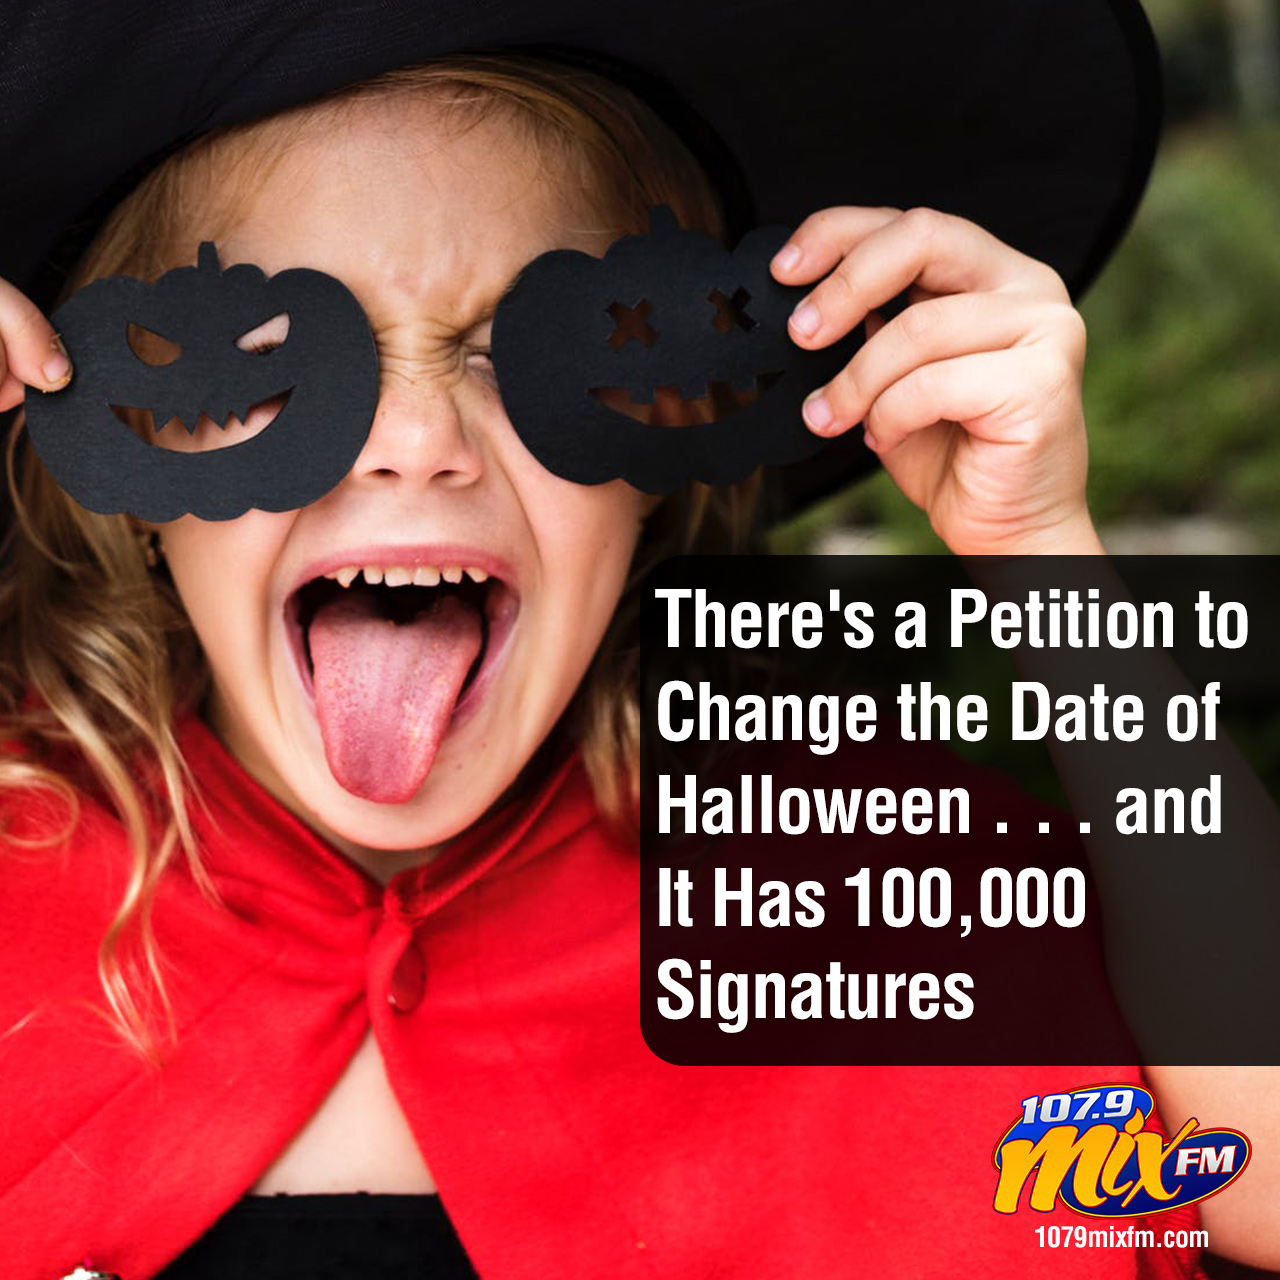 There's a Petition to Change the Date of Halloween . . . and It Has 100,000 Signatures